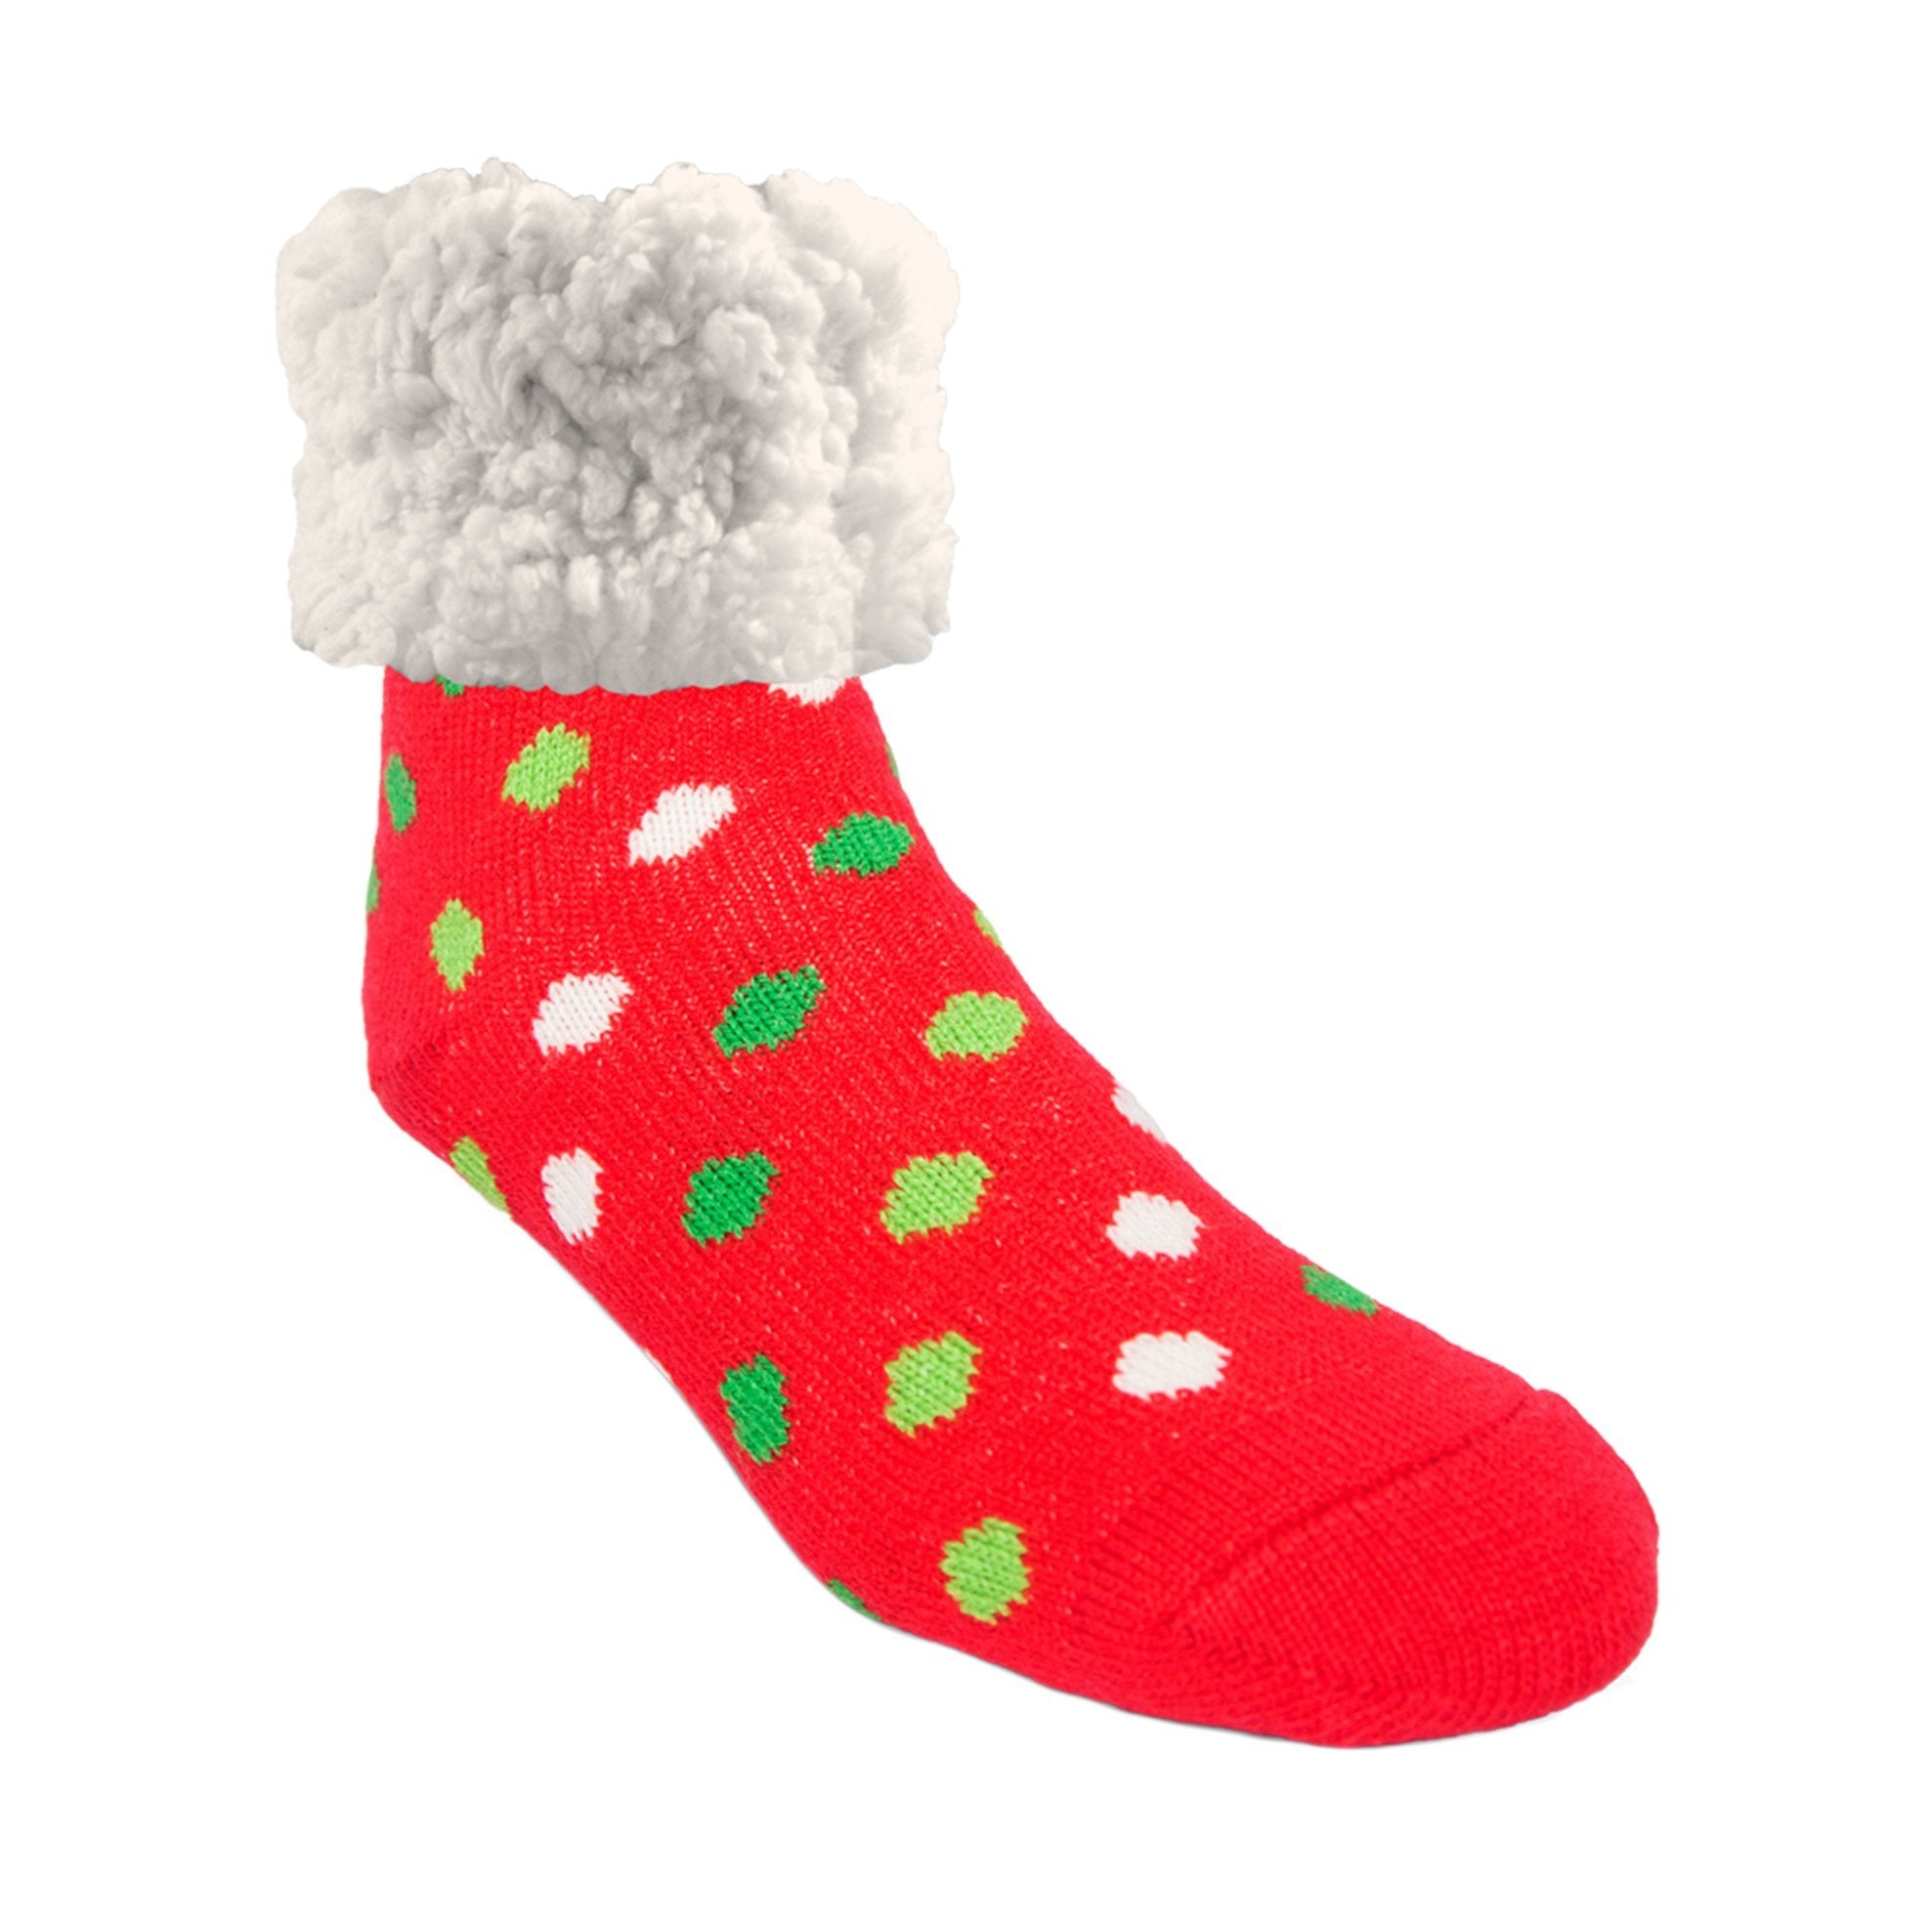 Classic Slipper Socks | Polka Dot Red